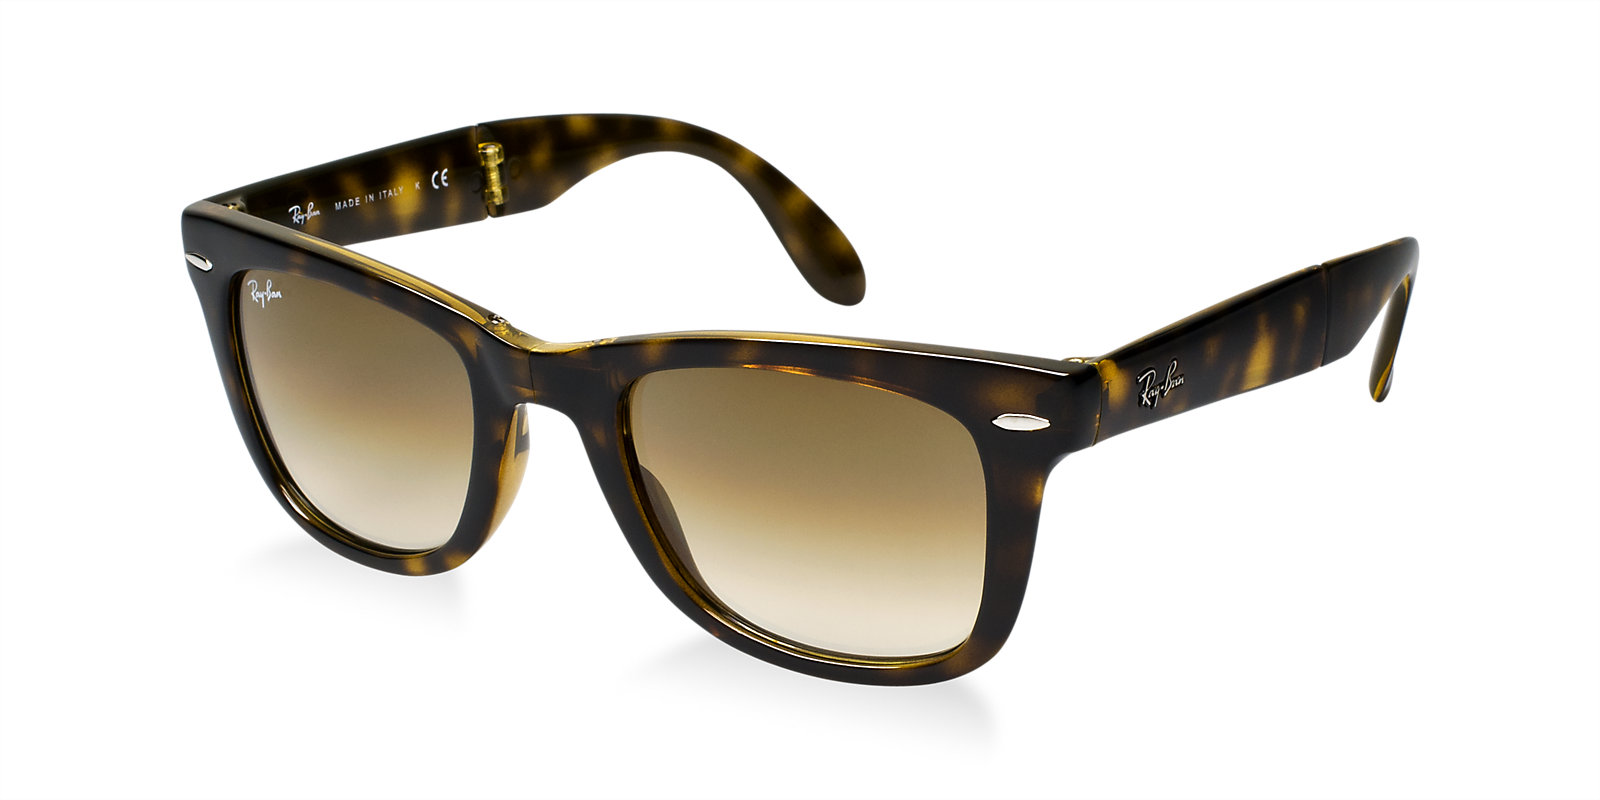 34b3d0b6d62 Previous  Next. Previous  Next. RAY-BAN RB4105 710 51 TORTOISE GRADIENT FOLDING  WAYFARER SUNGLASSES